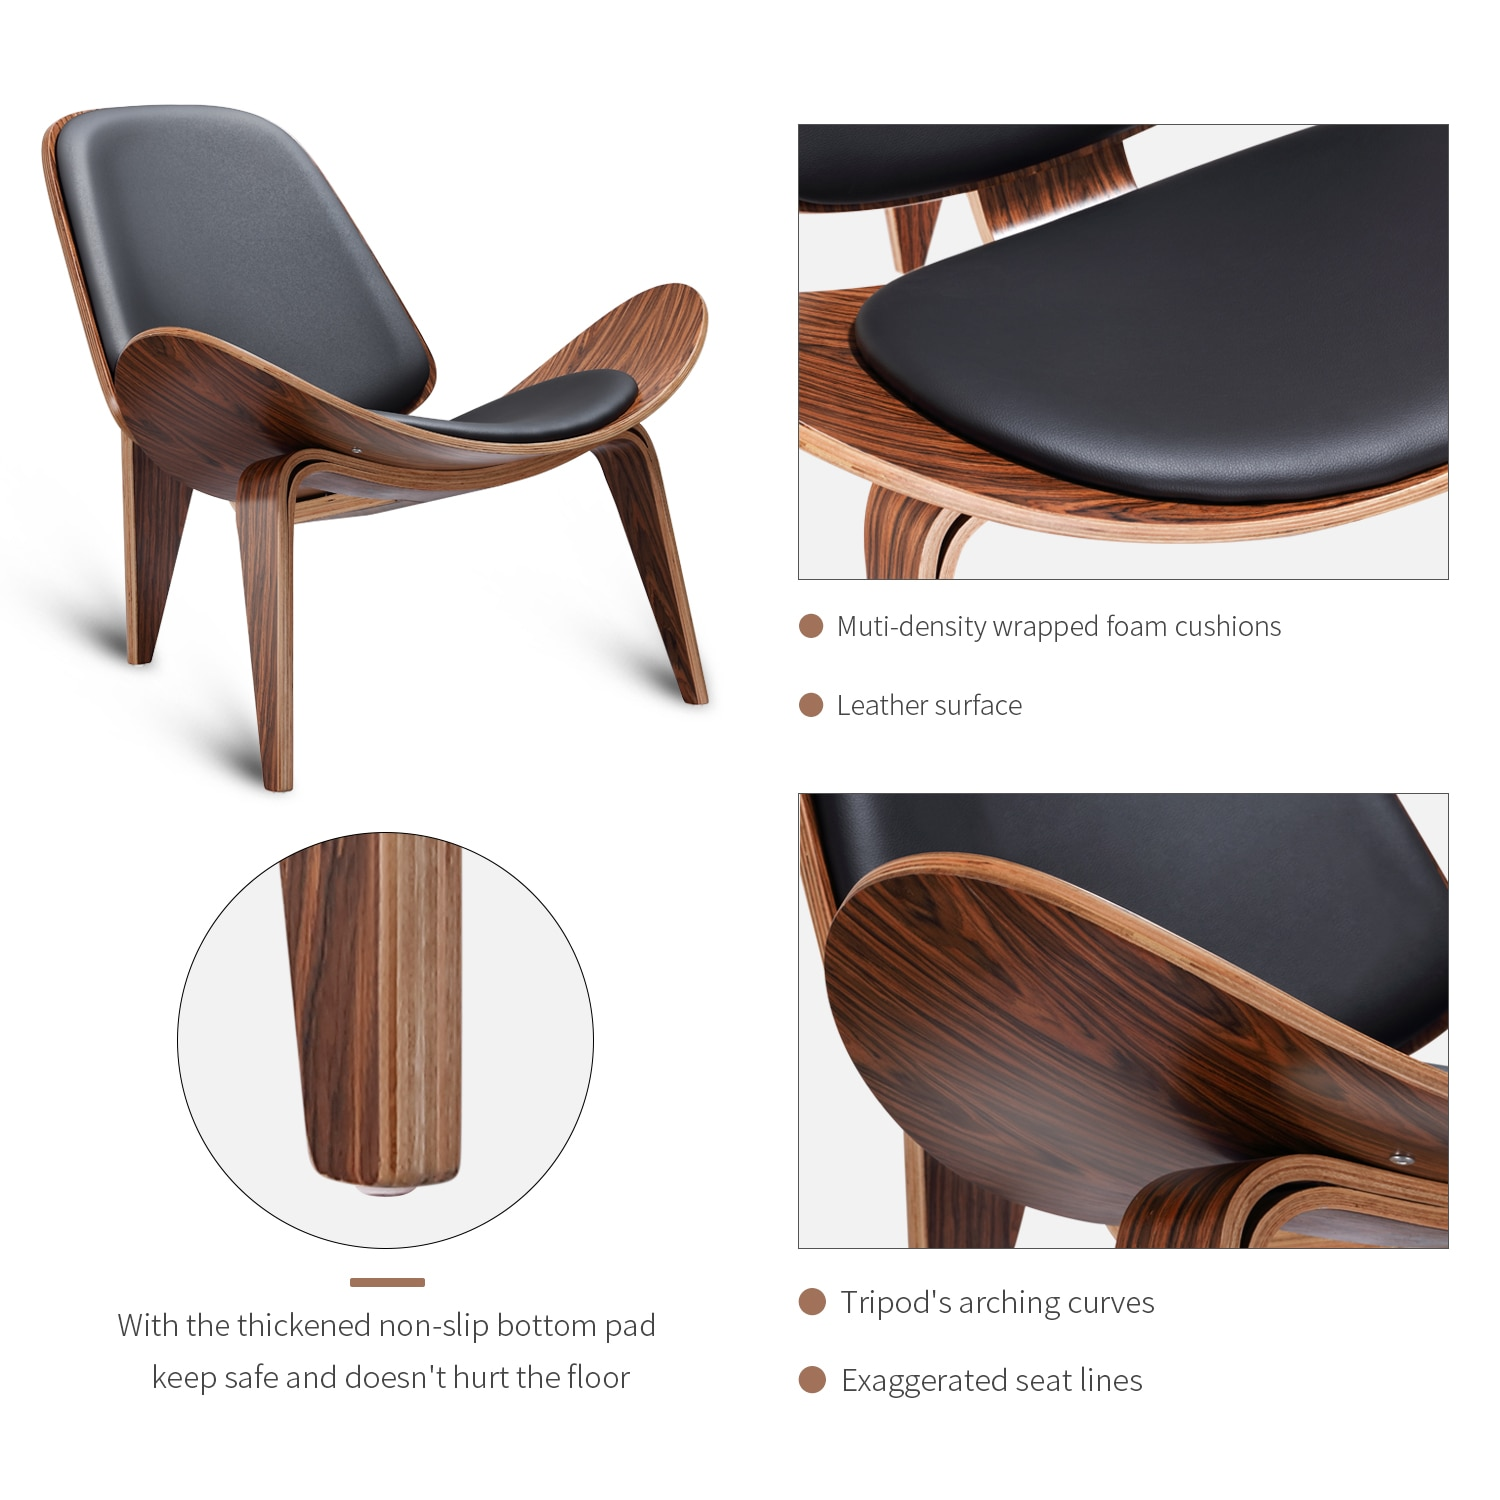 H29c7516745814d6695fe7ecfb914290eJ - Design Furniture Bentwood Chair Hands Wegner Replica Lounge Chair with PU Leather Seat Comfort Cushion Coffee Chair Office Chair